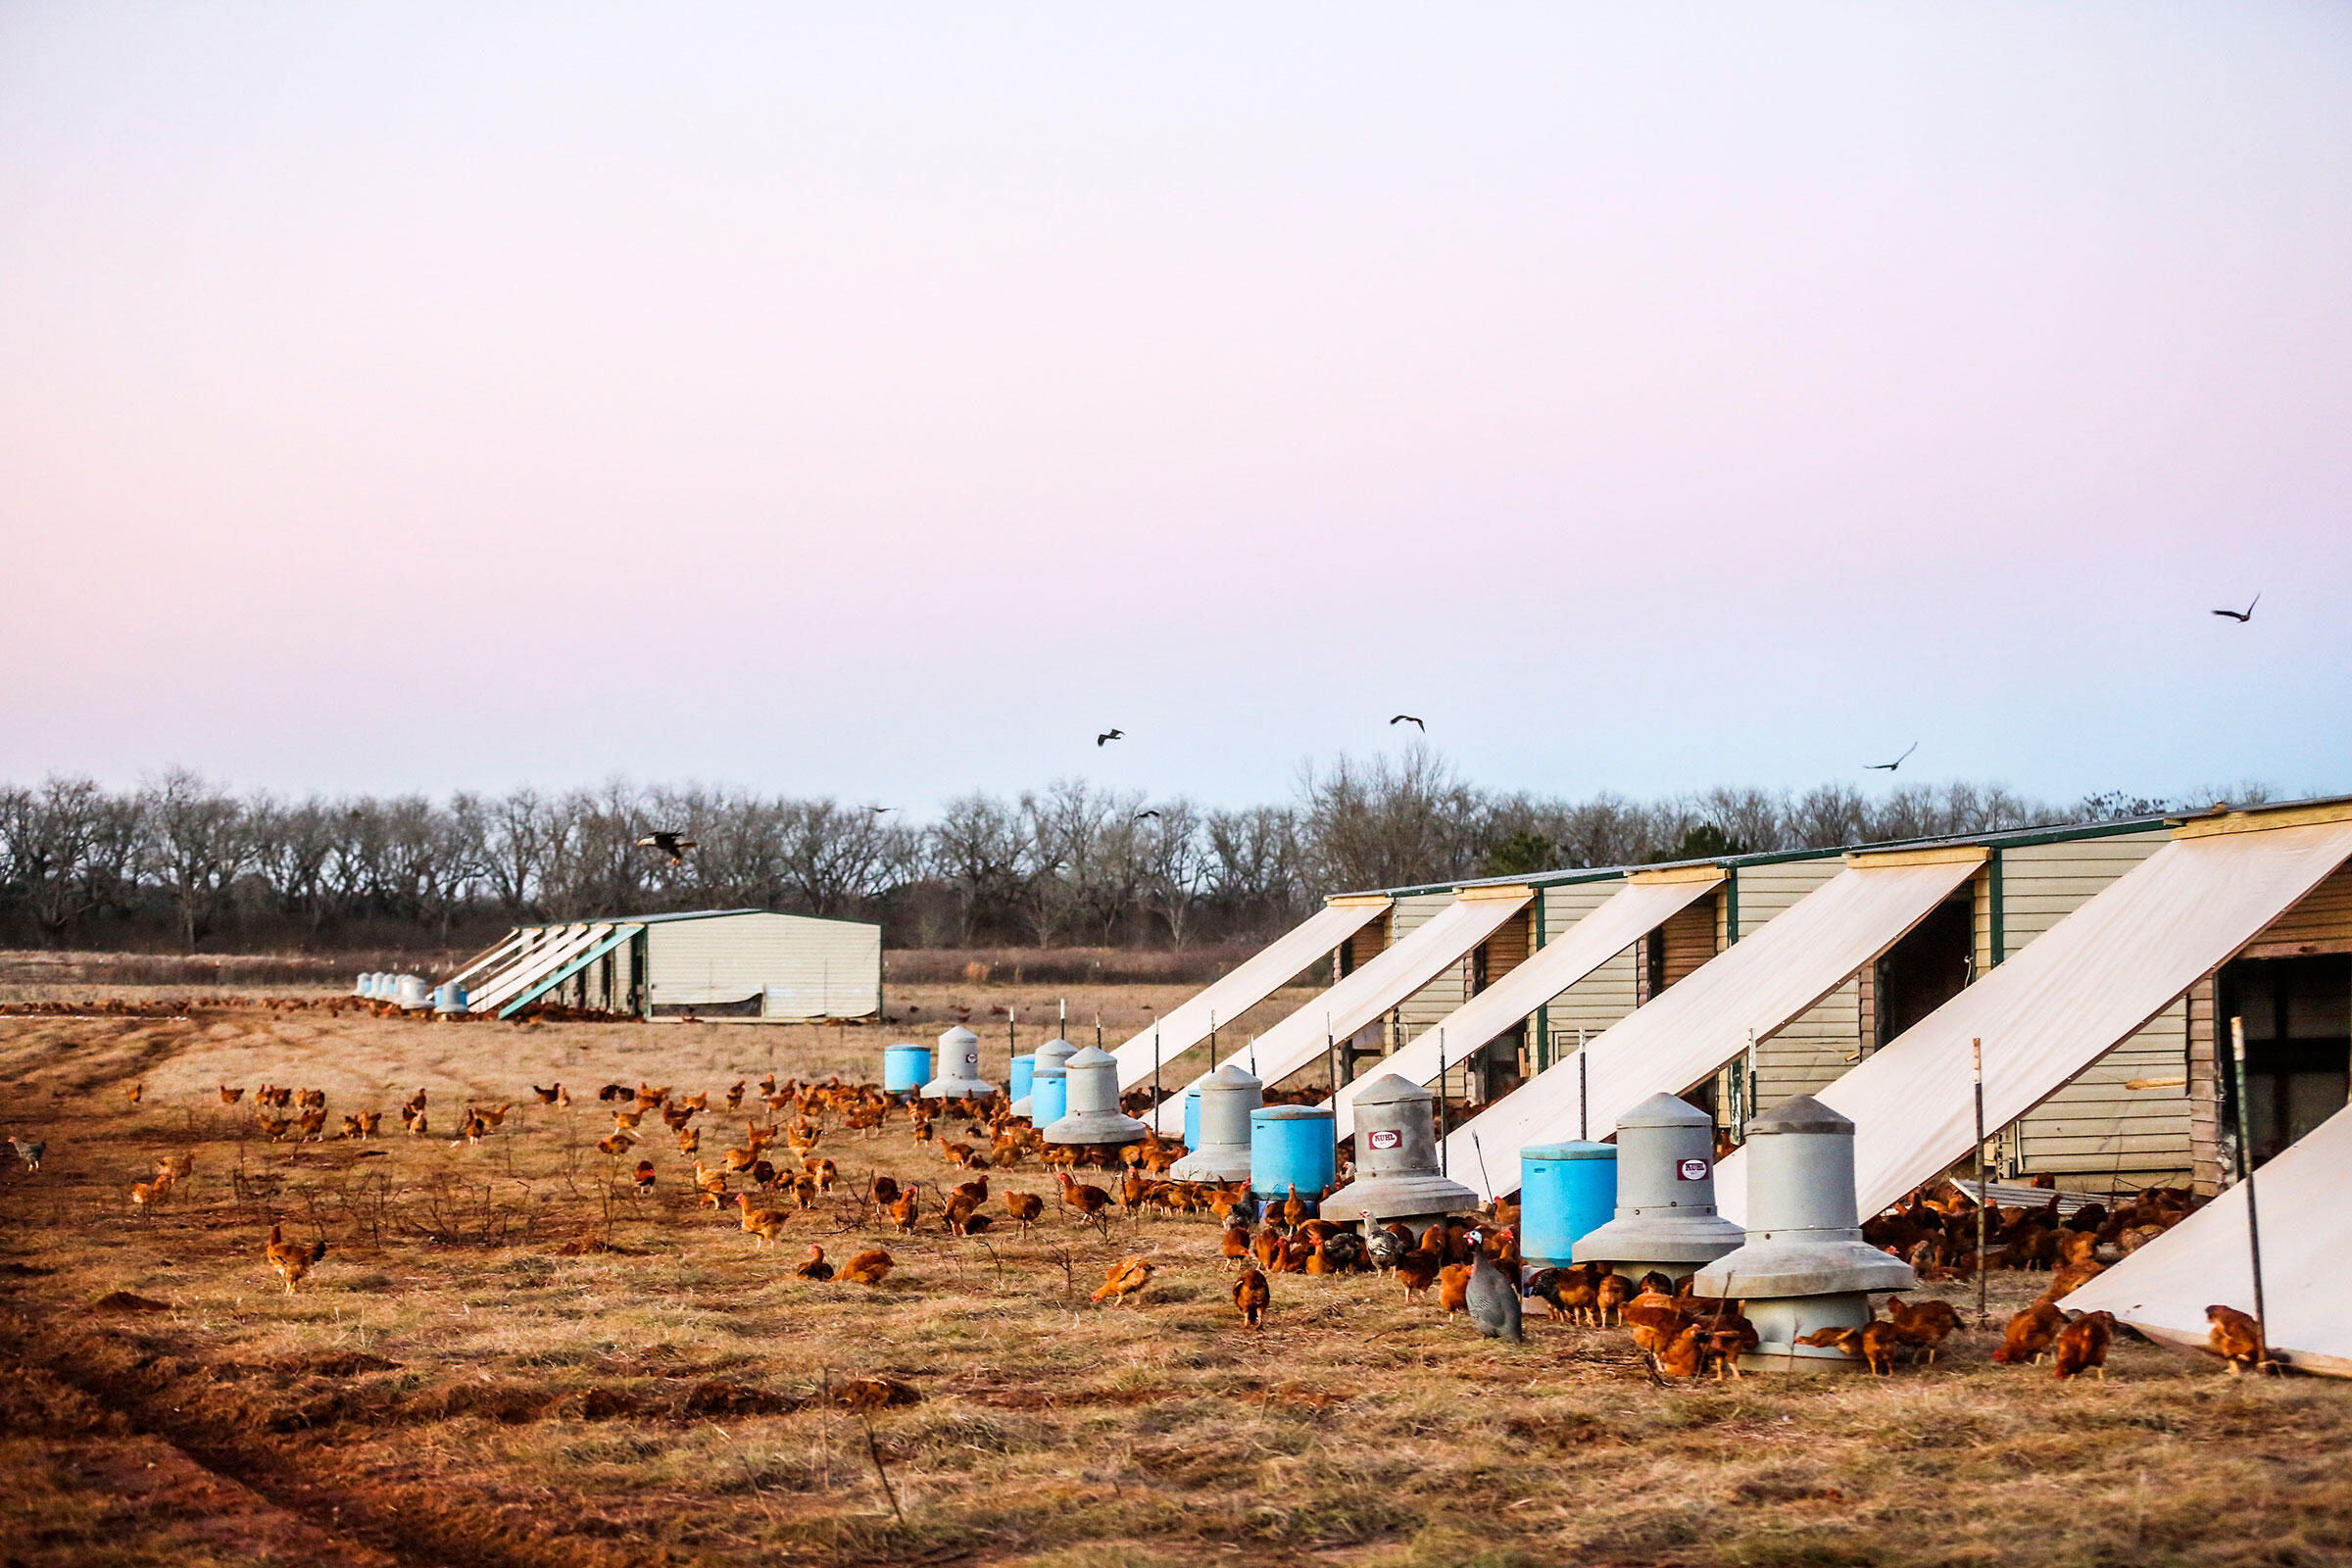 Bald Eagles probably don't consume more than one chicken a day, though they may kill others that aren't eaten. The raptors circle above the portable chicken houses, where they are guaranteed a fresh meal. Bryan Meltz